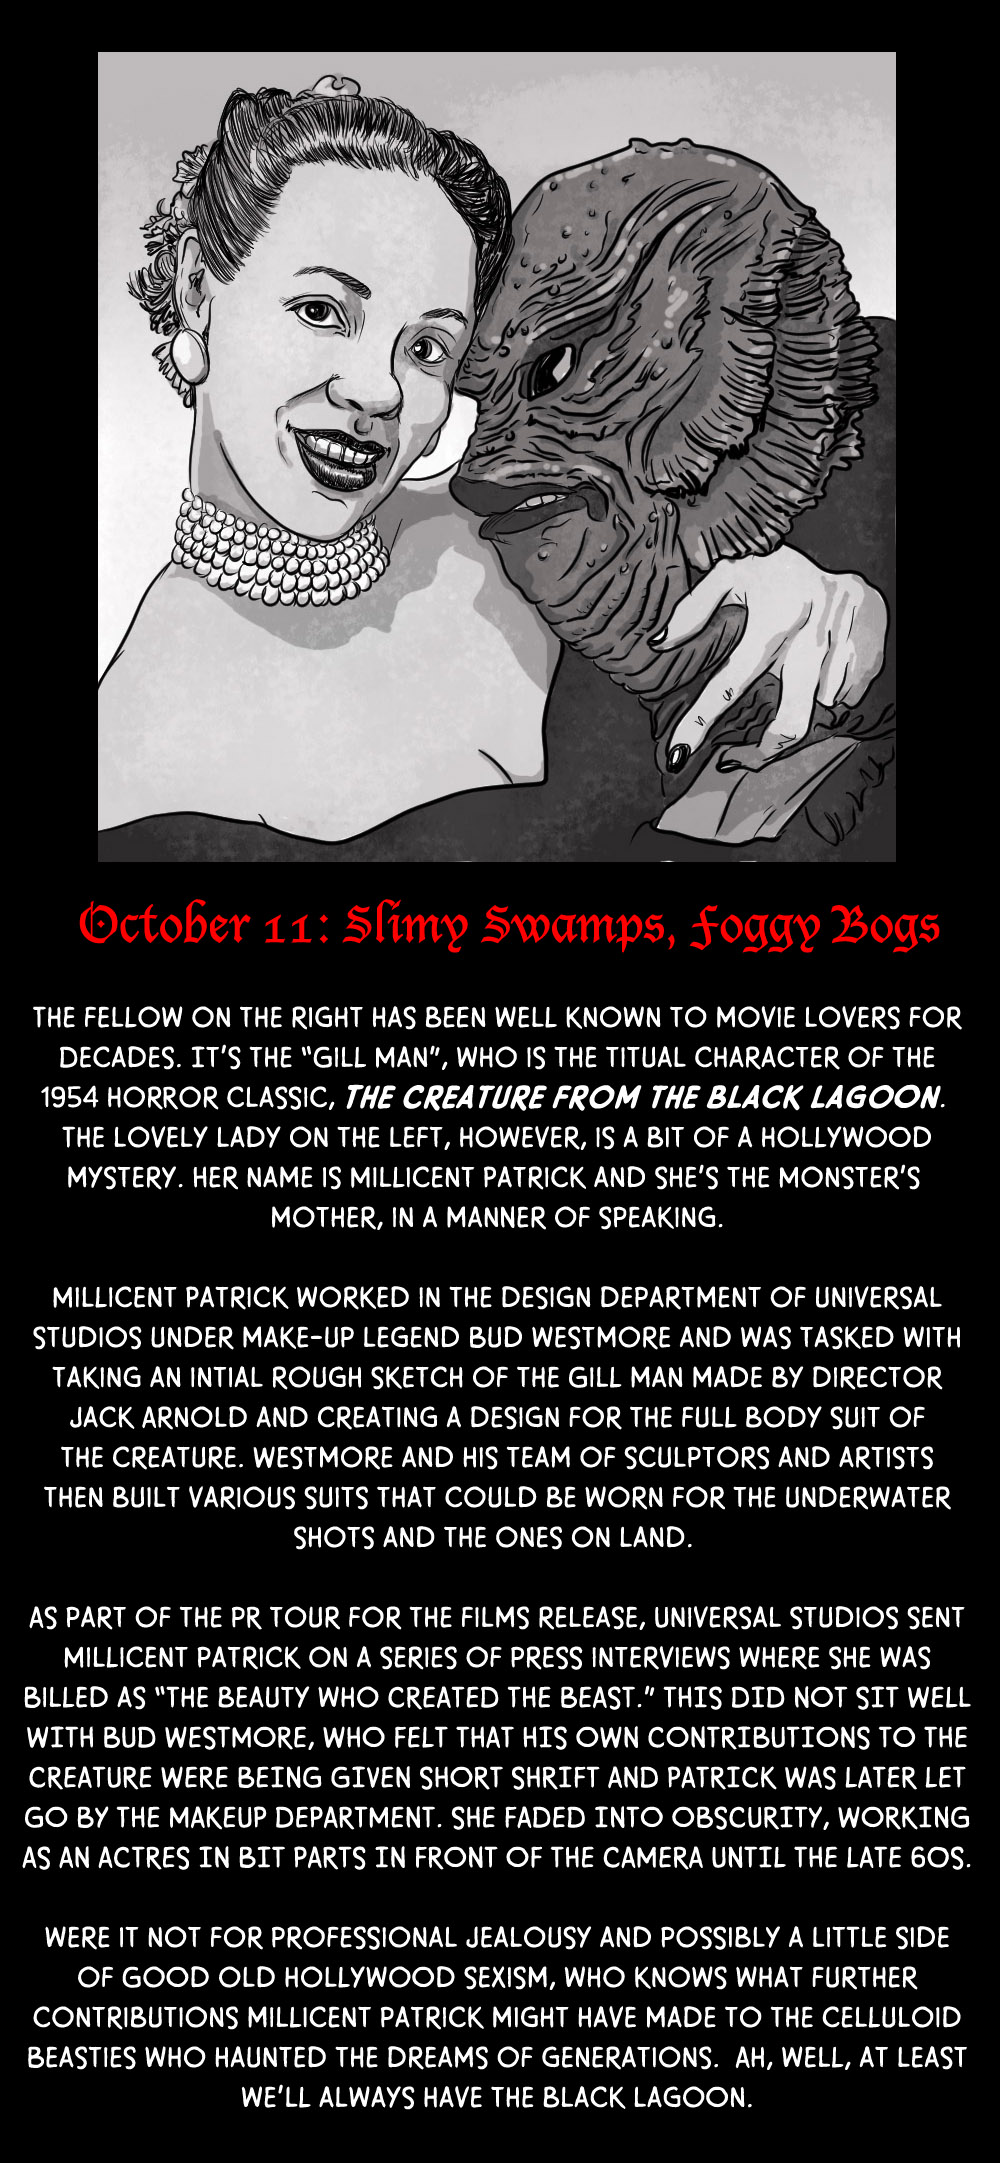 October 11: Slimy Swamps and Foggy Bogs (and a Beauty of a Designer)